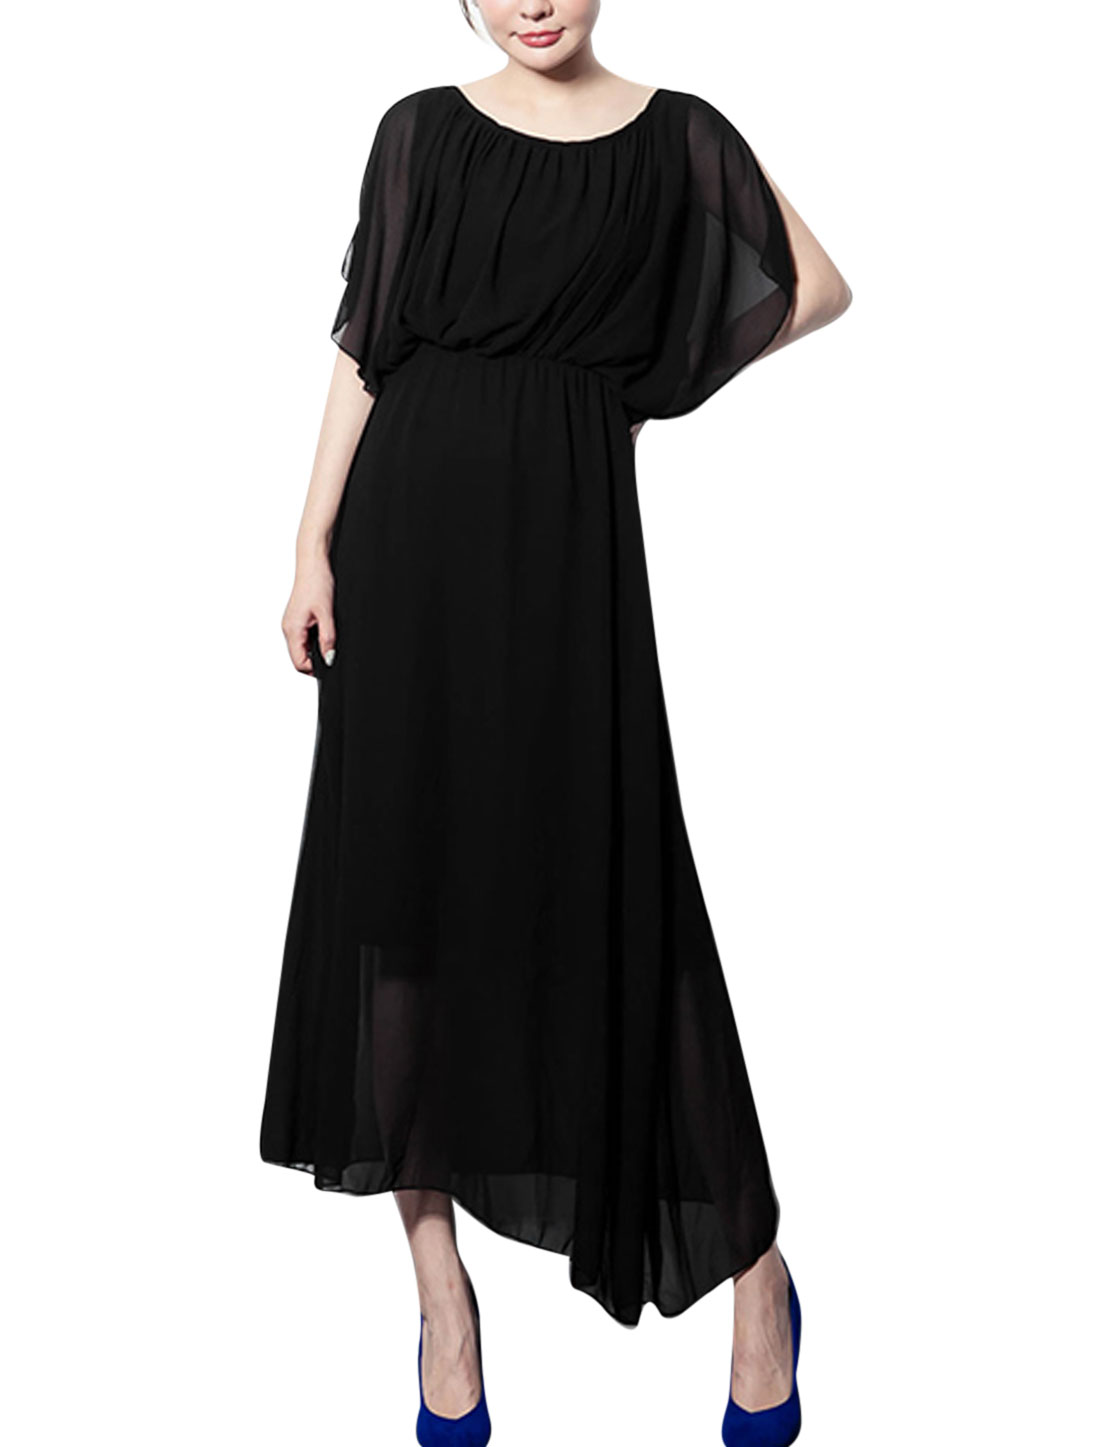 Ladies Elastic Waist Gathered Detail Maxi Chiffon Dress Black S